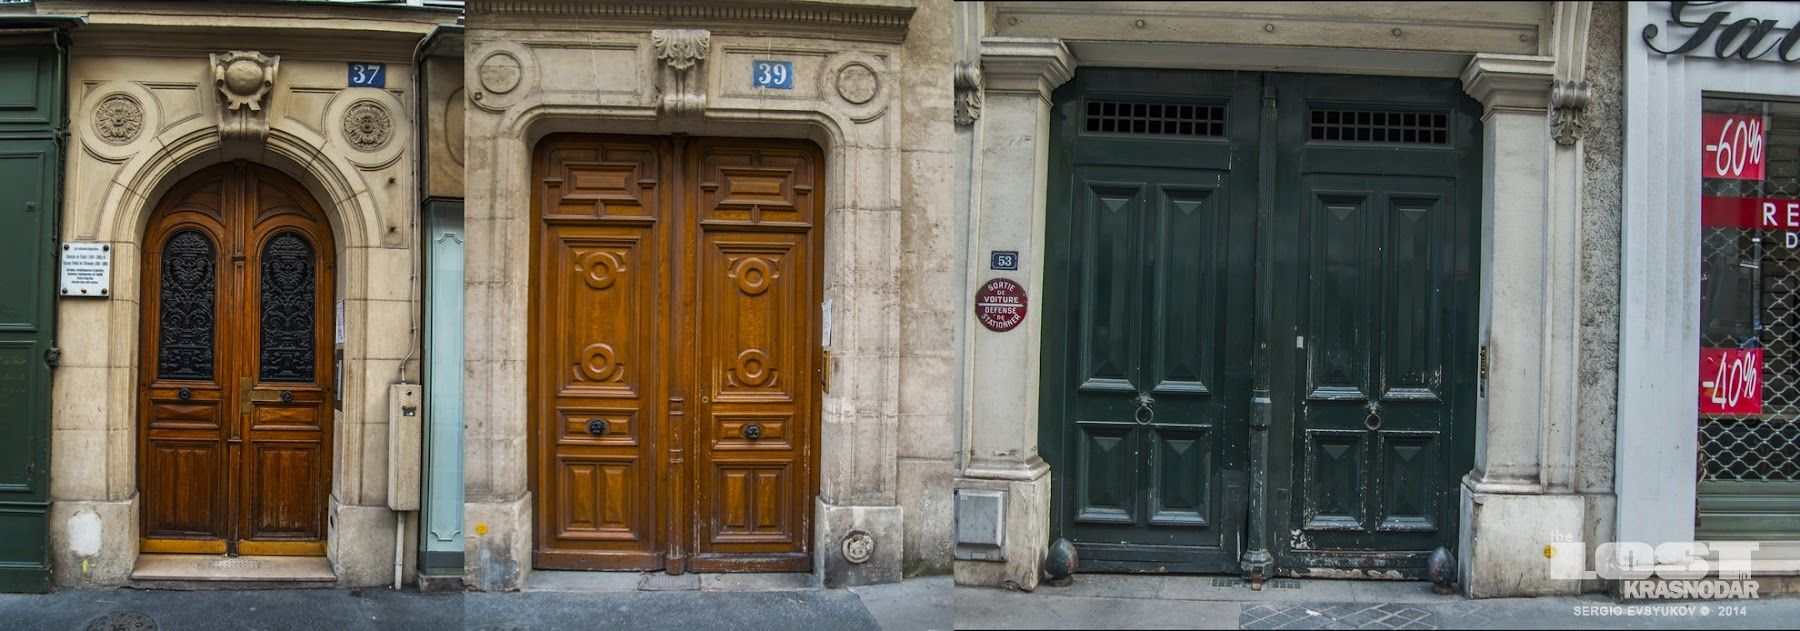 front doors in Paris